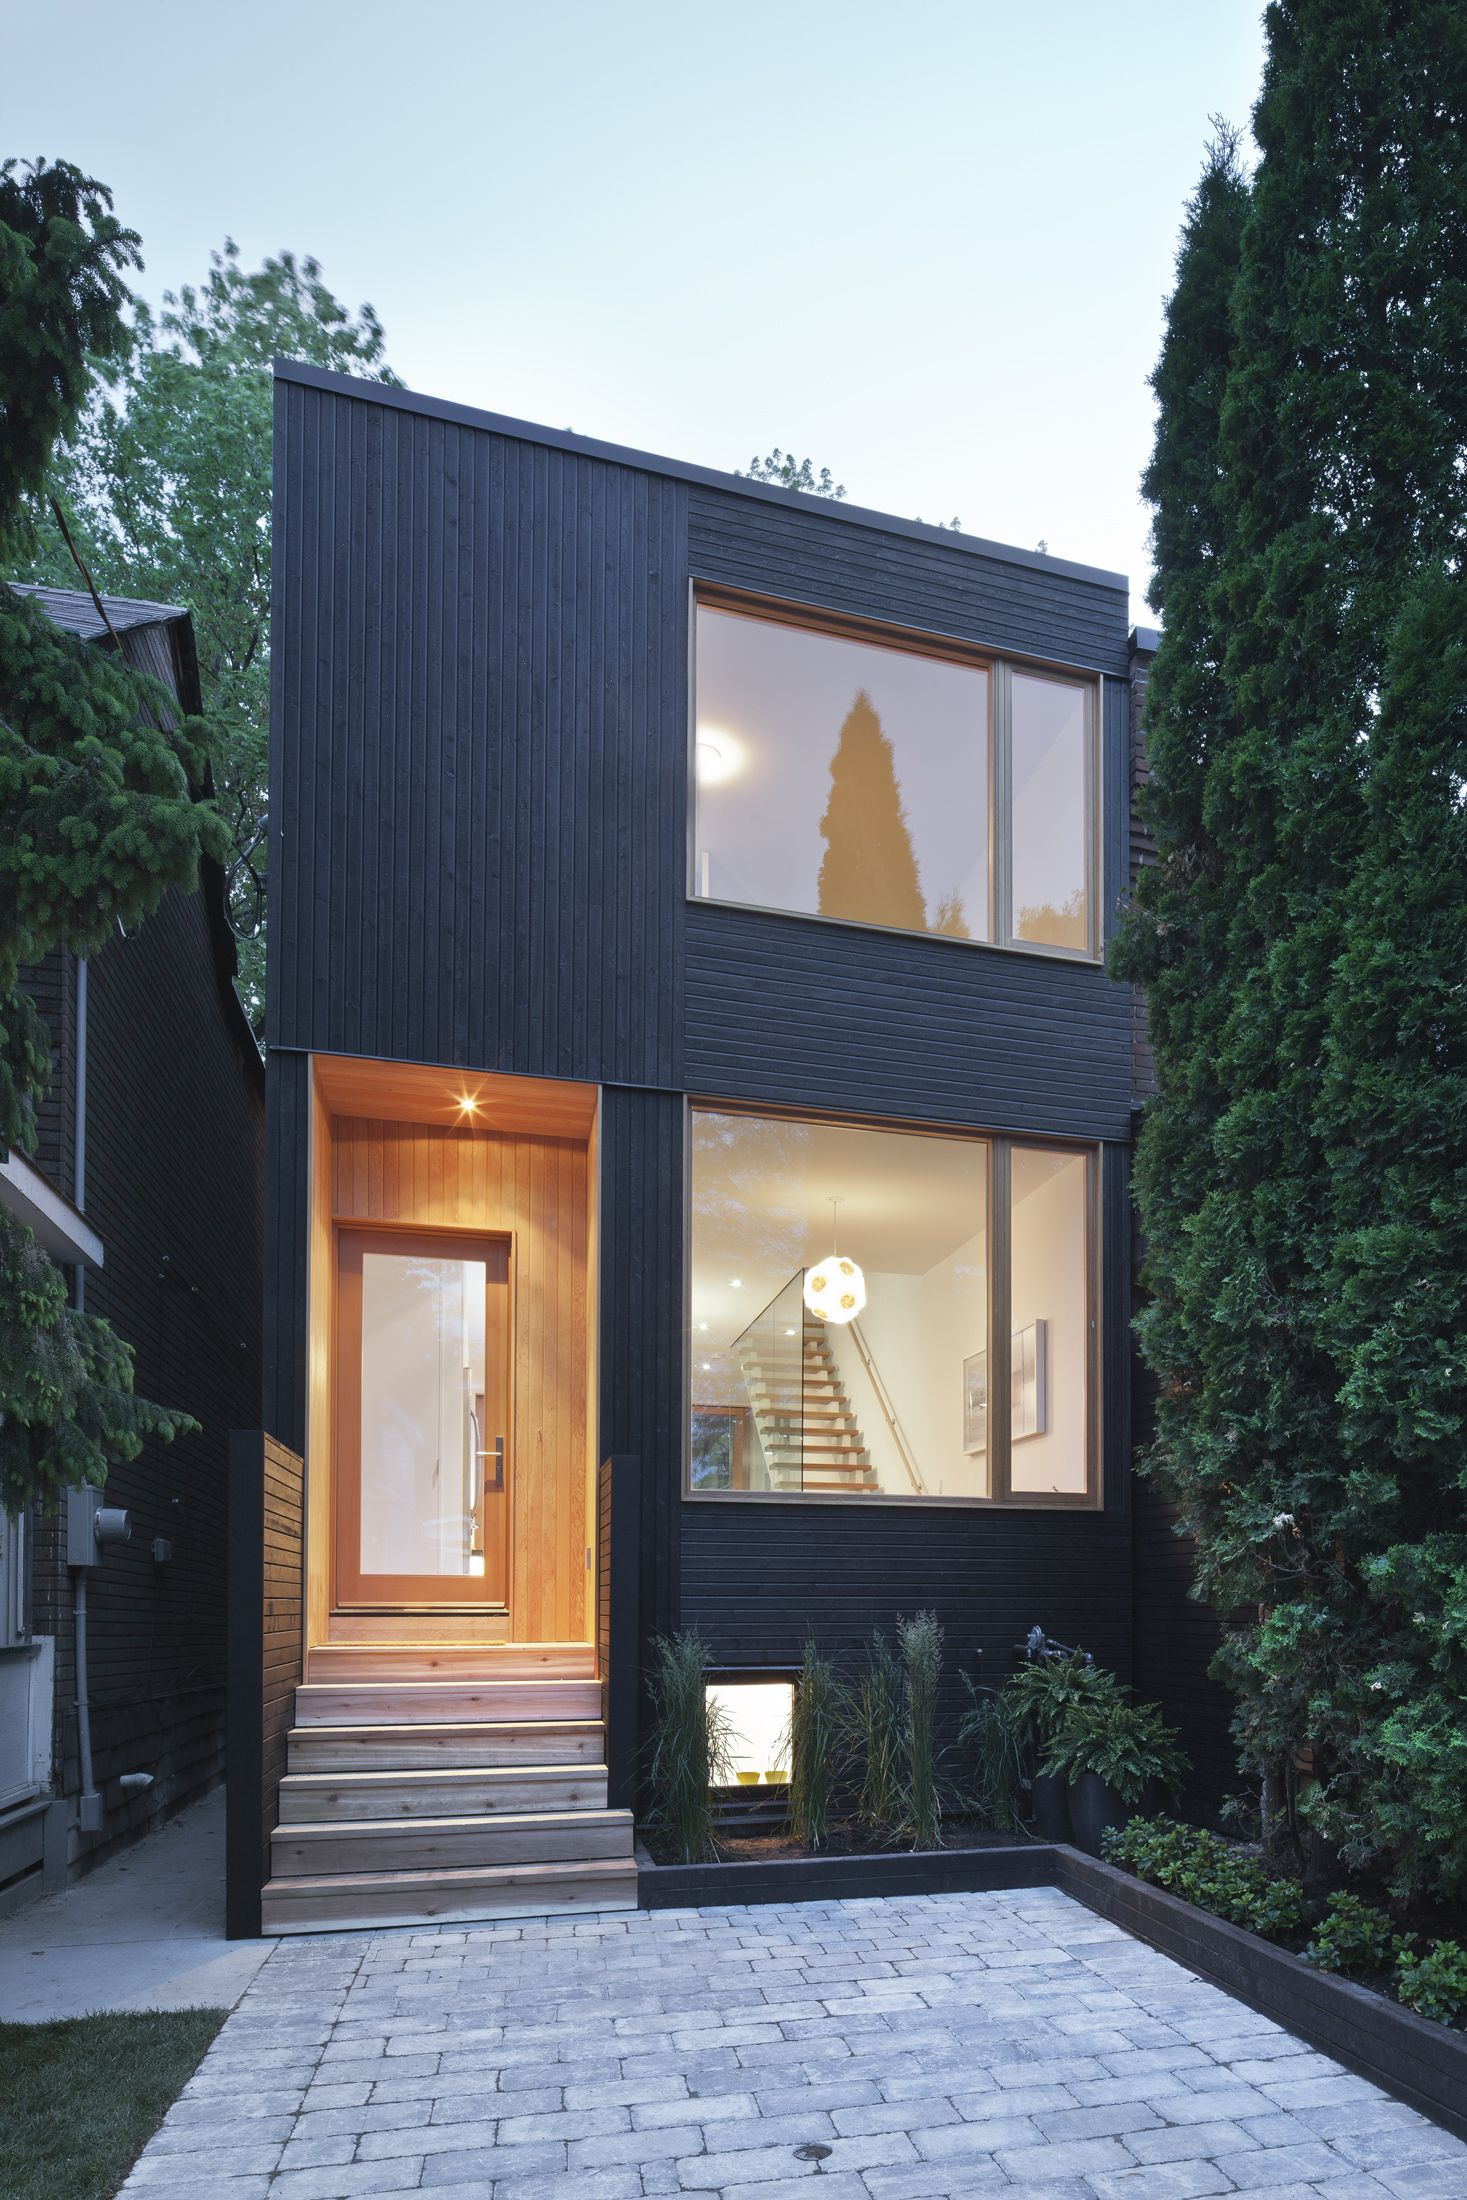 An affordable modern toronto house modernest one kyra for Contemporary tiny house